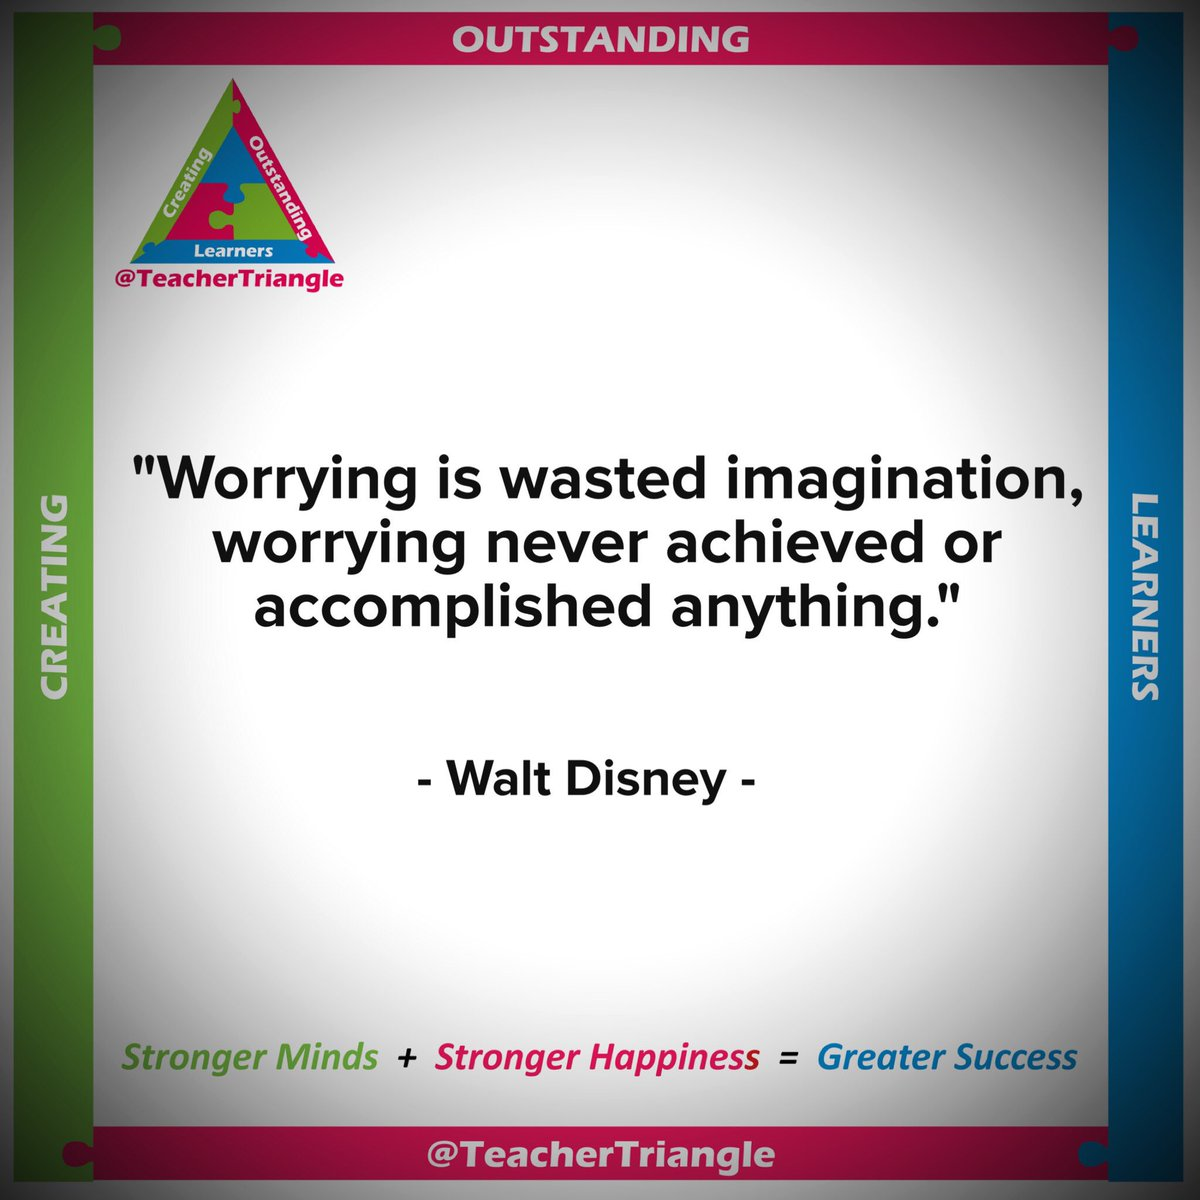 &quot;Worrying is wasted imagination&quot; - this is Great #WednesdayWisdom!  #teacher5aday #sltchat #ukedchat #wellbeing <br>http://pic.twitter.com/lz8Q487lIT